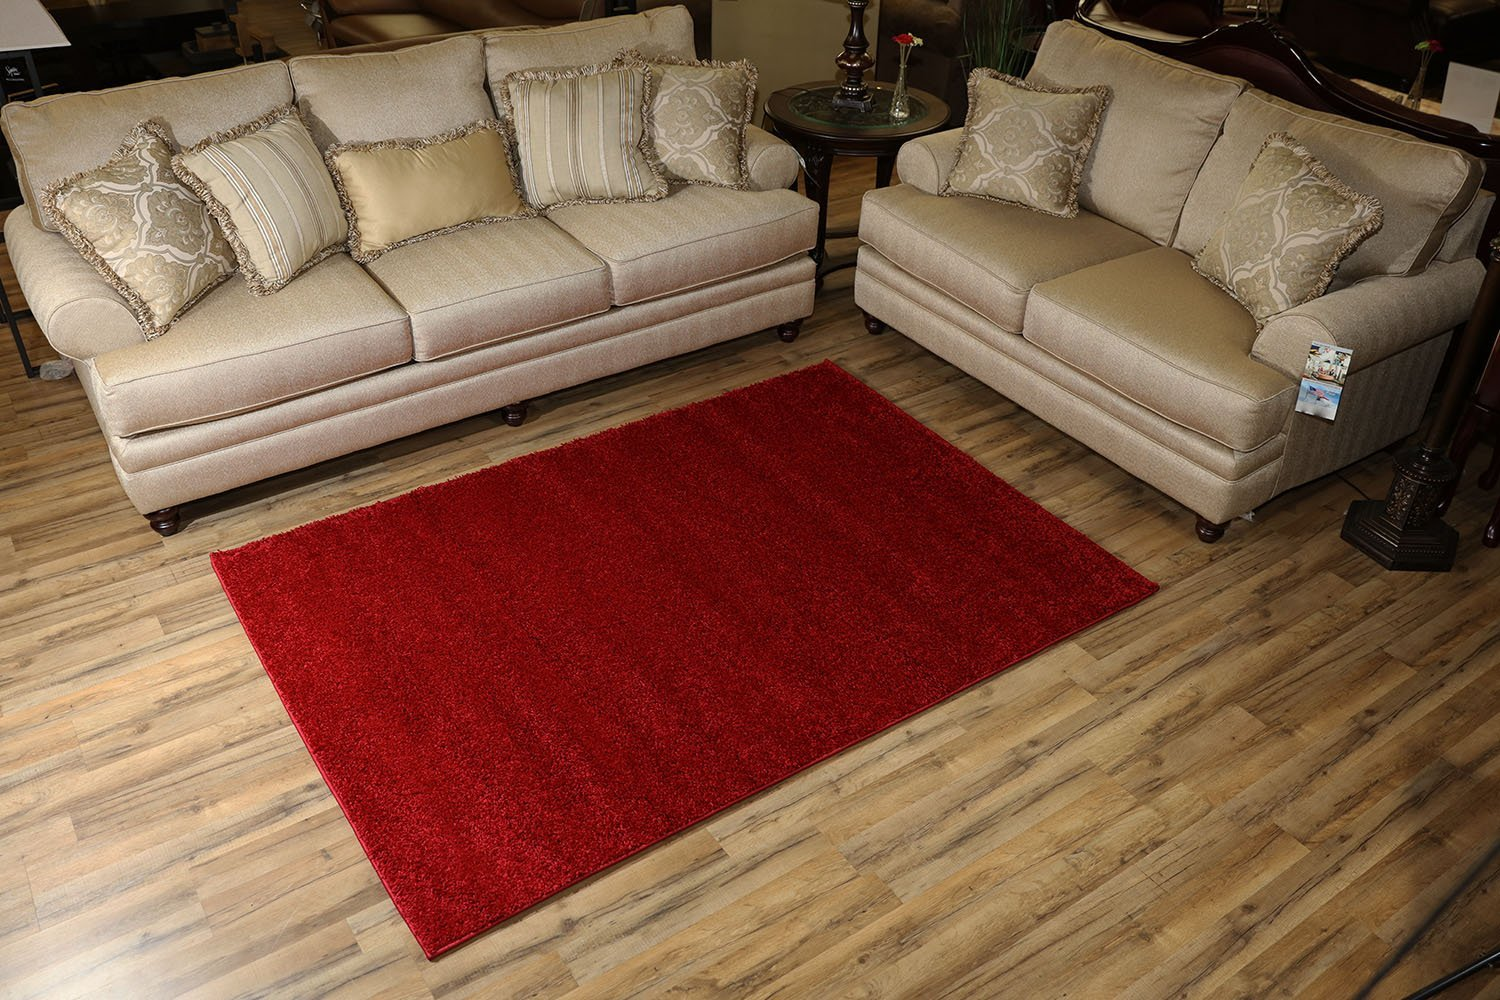 Rug Styles Soho Solid Color Shag Area Rug Rugs - Red - 5x7 ... - photo#46